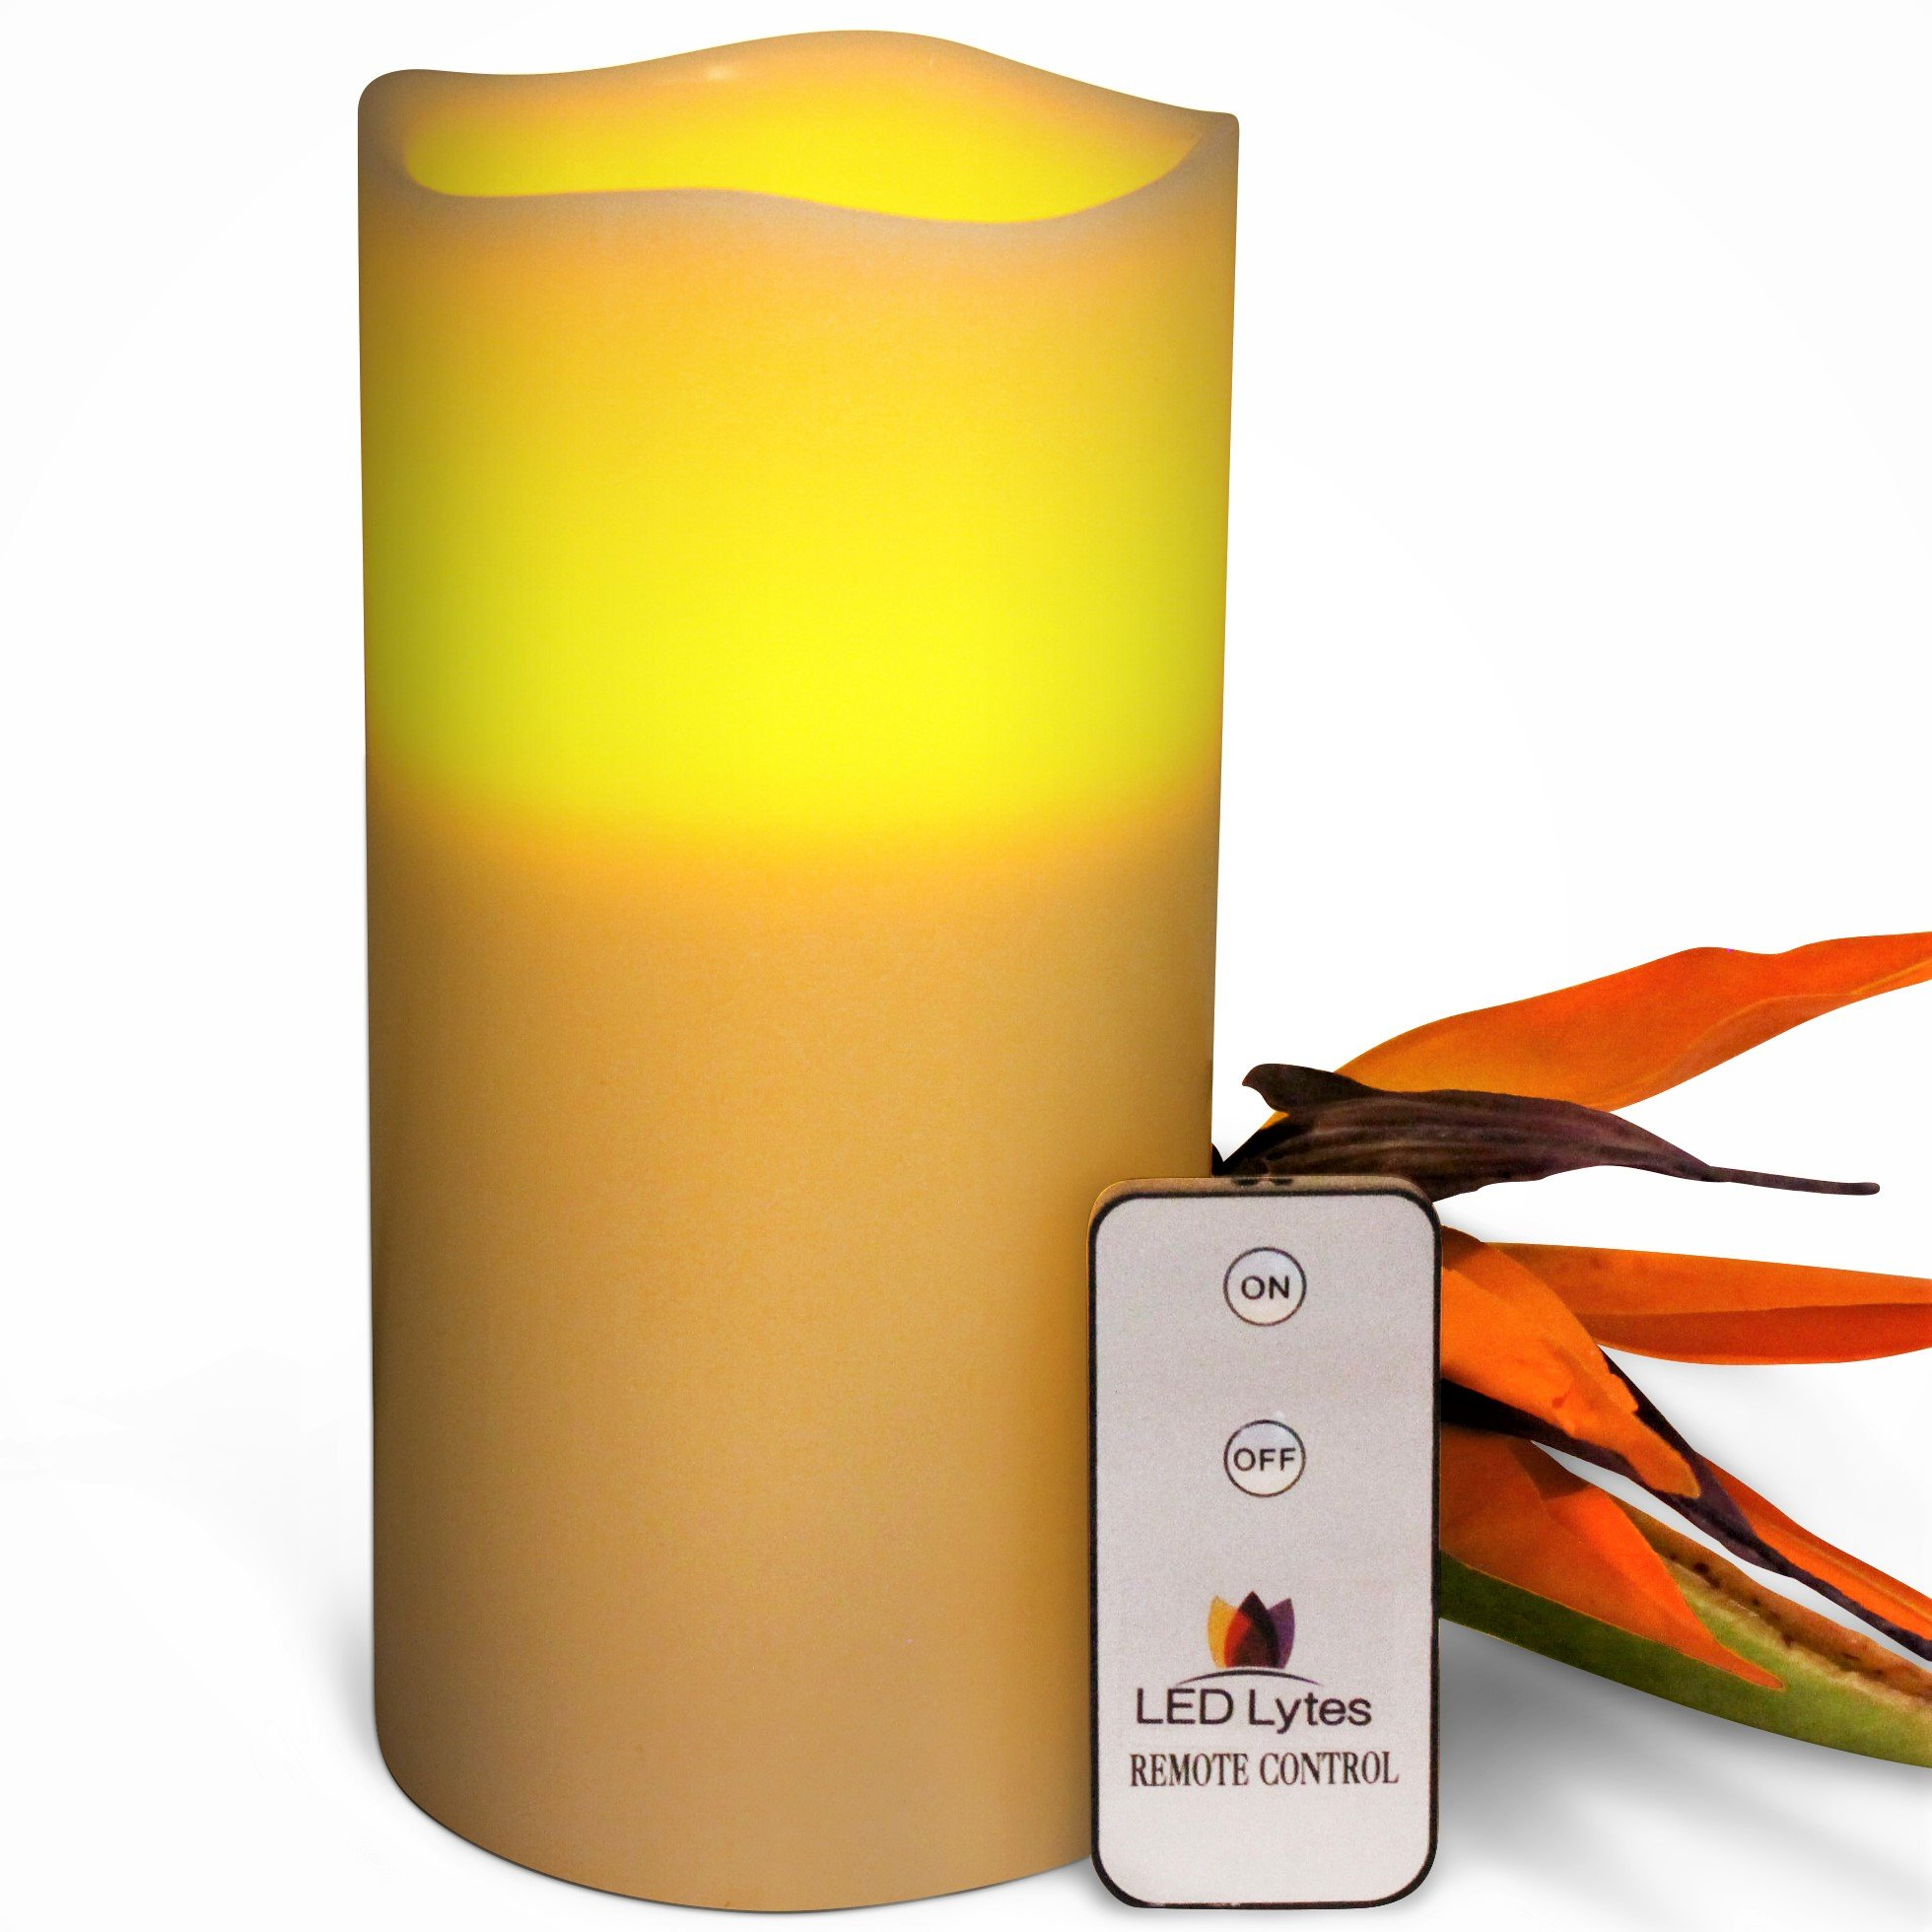 LED Lytes Flameless Candle Flickering - ONE Amber Yellow Pillar Battery Operated with Remote for Parties Weddings and Decorations